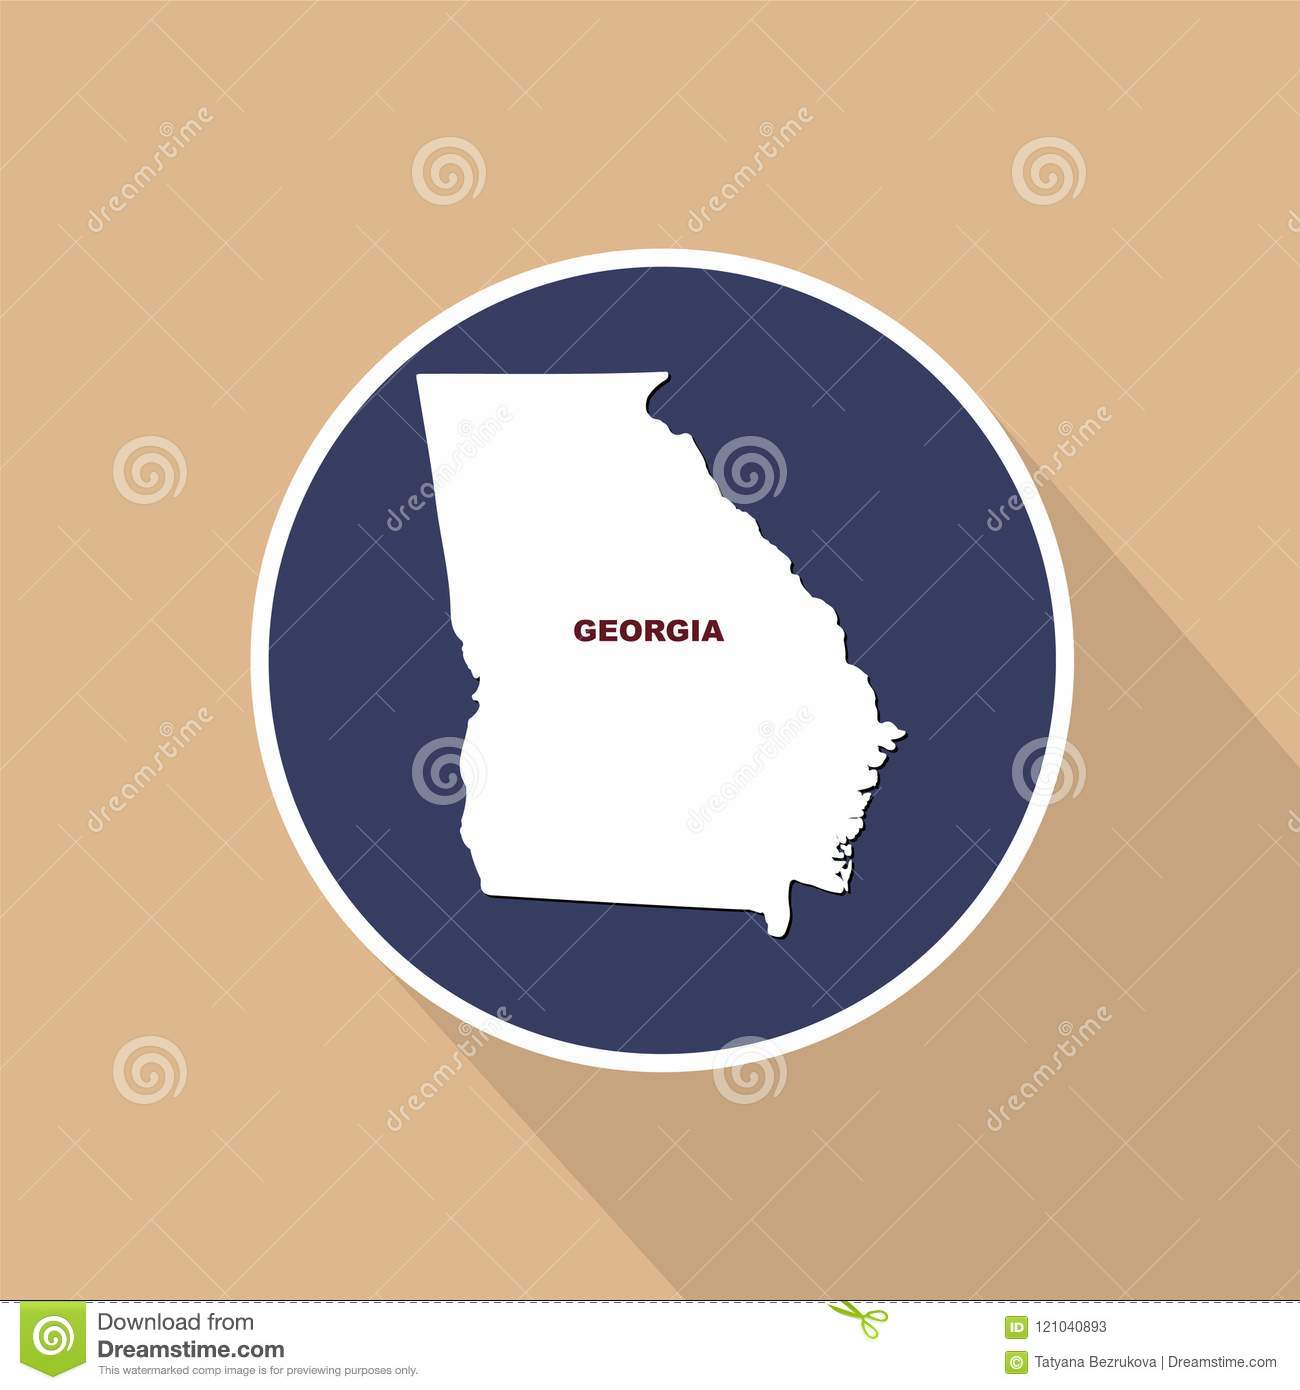 Map Of The U.S. State Of Georgia On A Blue Background. State ... Georgia On The Us Map on georgia on middle east map, georgia on europe map, georgia on asia map, georgia state map, usa map, georgia on africa map, georgia's landmarks and points on map, georgia-florida tennessee california texas map, georgia usa, georgia on russia map, georgia on florida map, georgia and texas on a map,